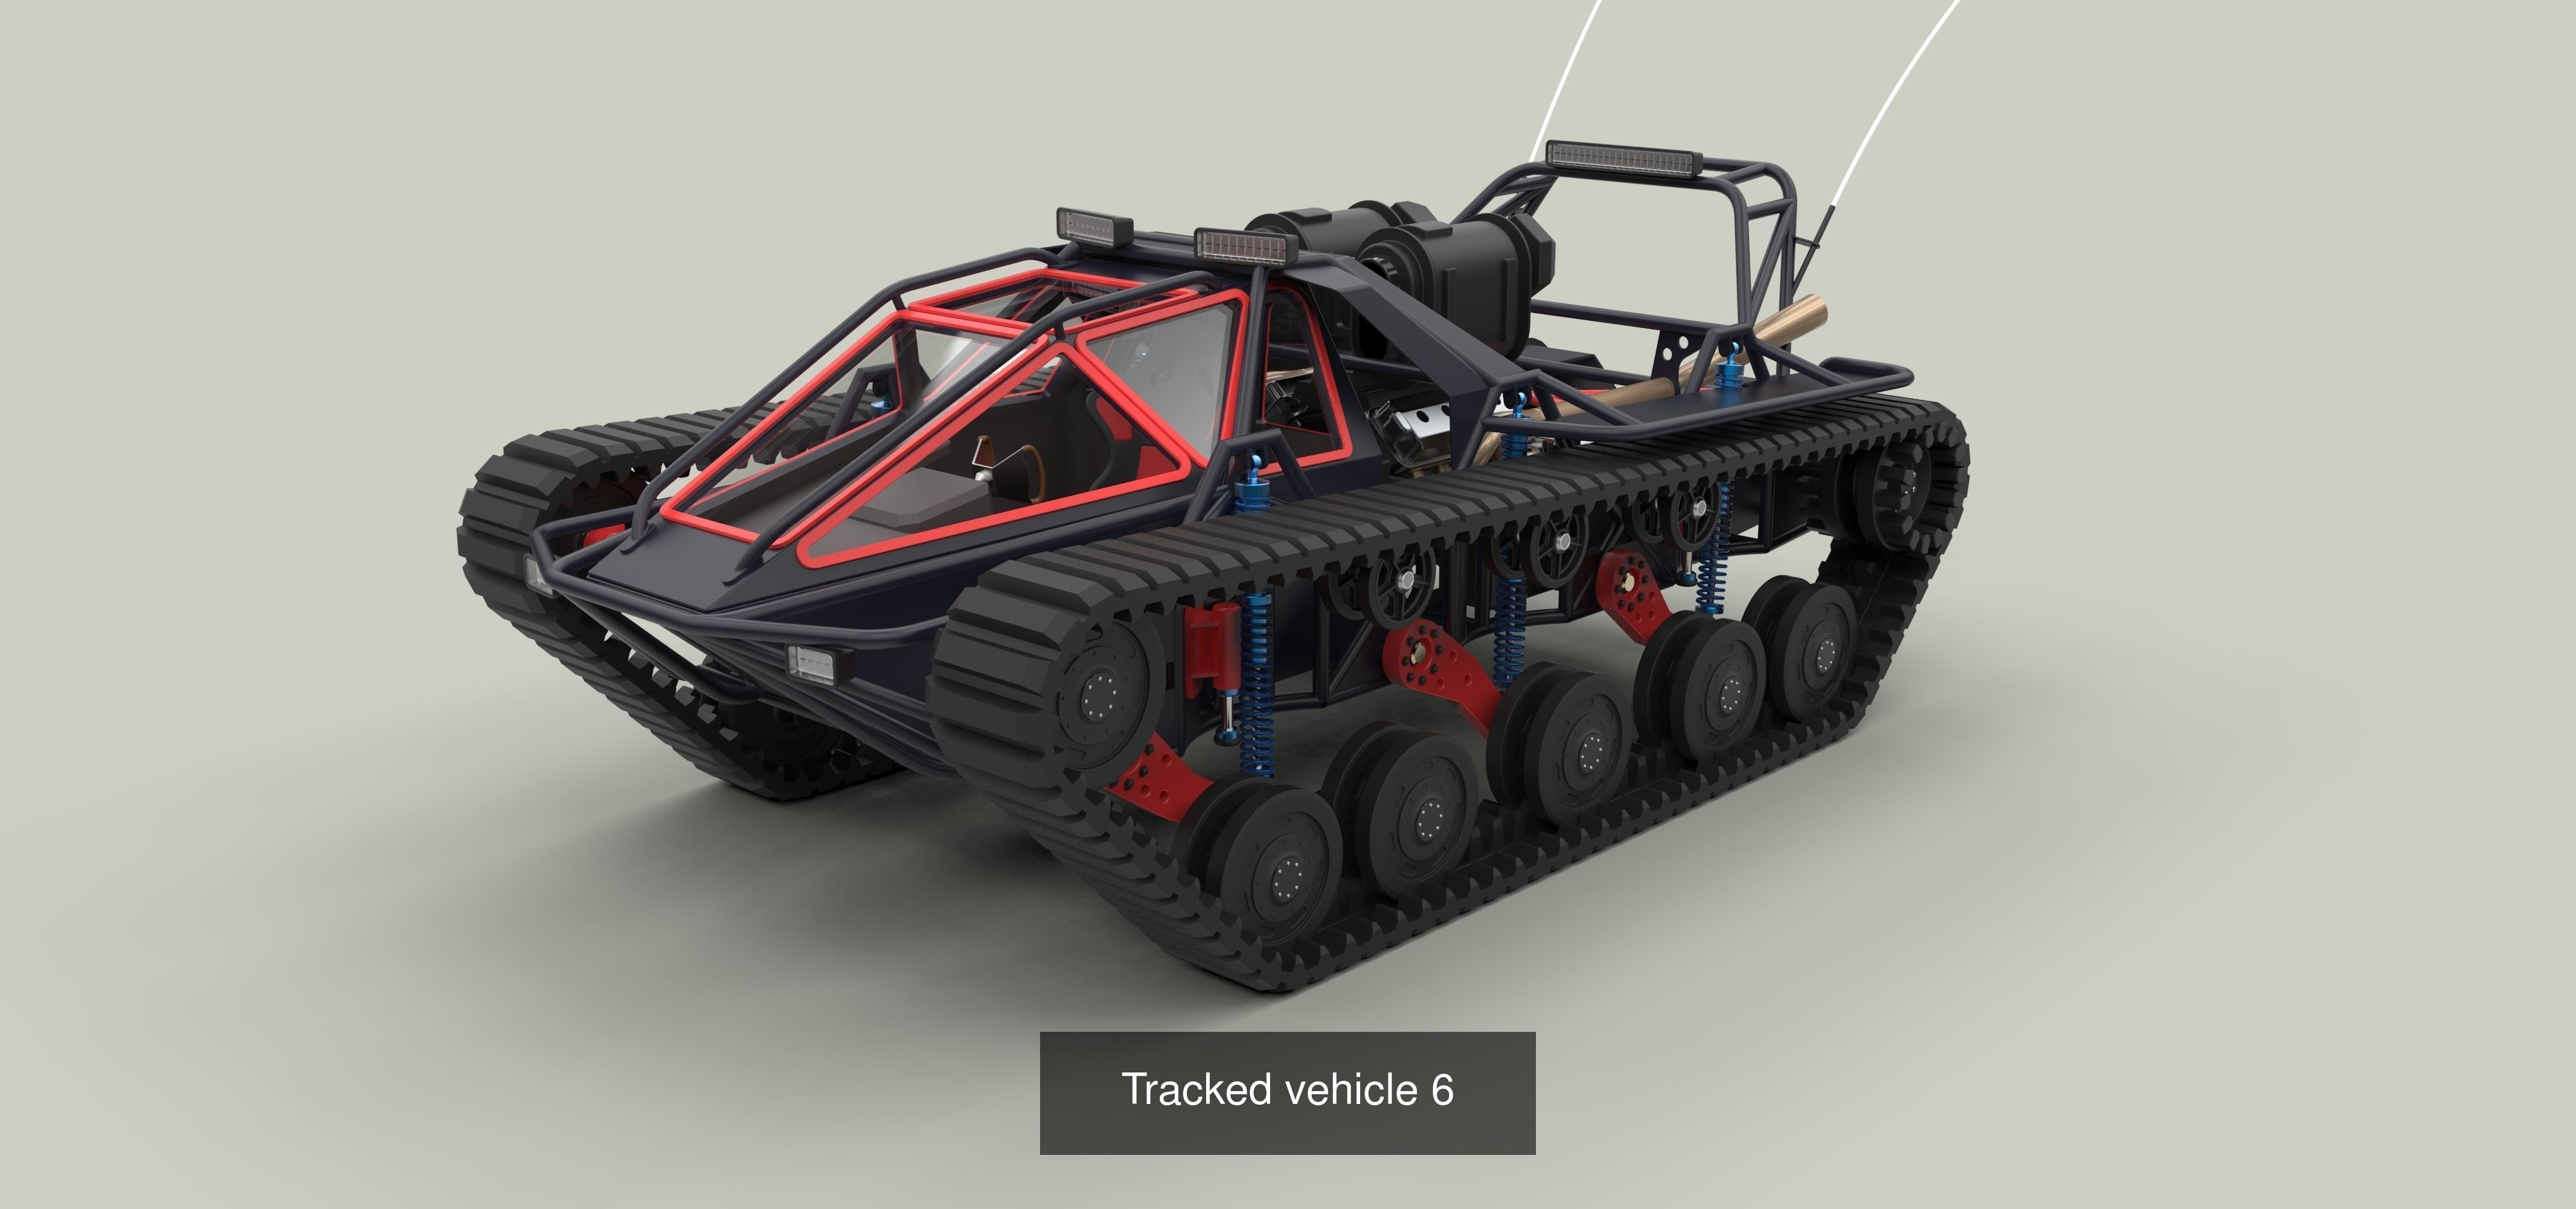 Powerful tracked vehicles